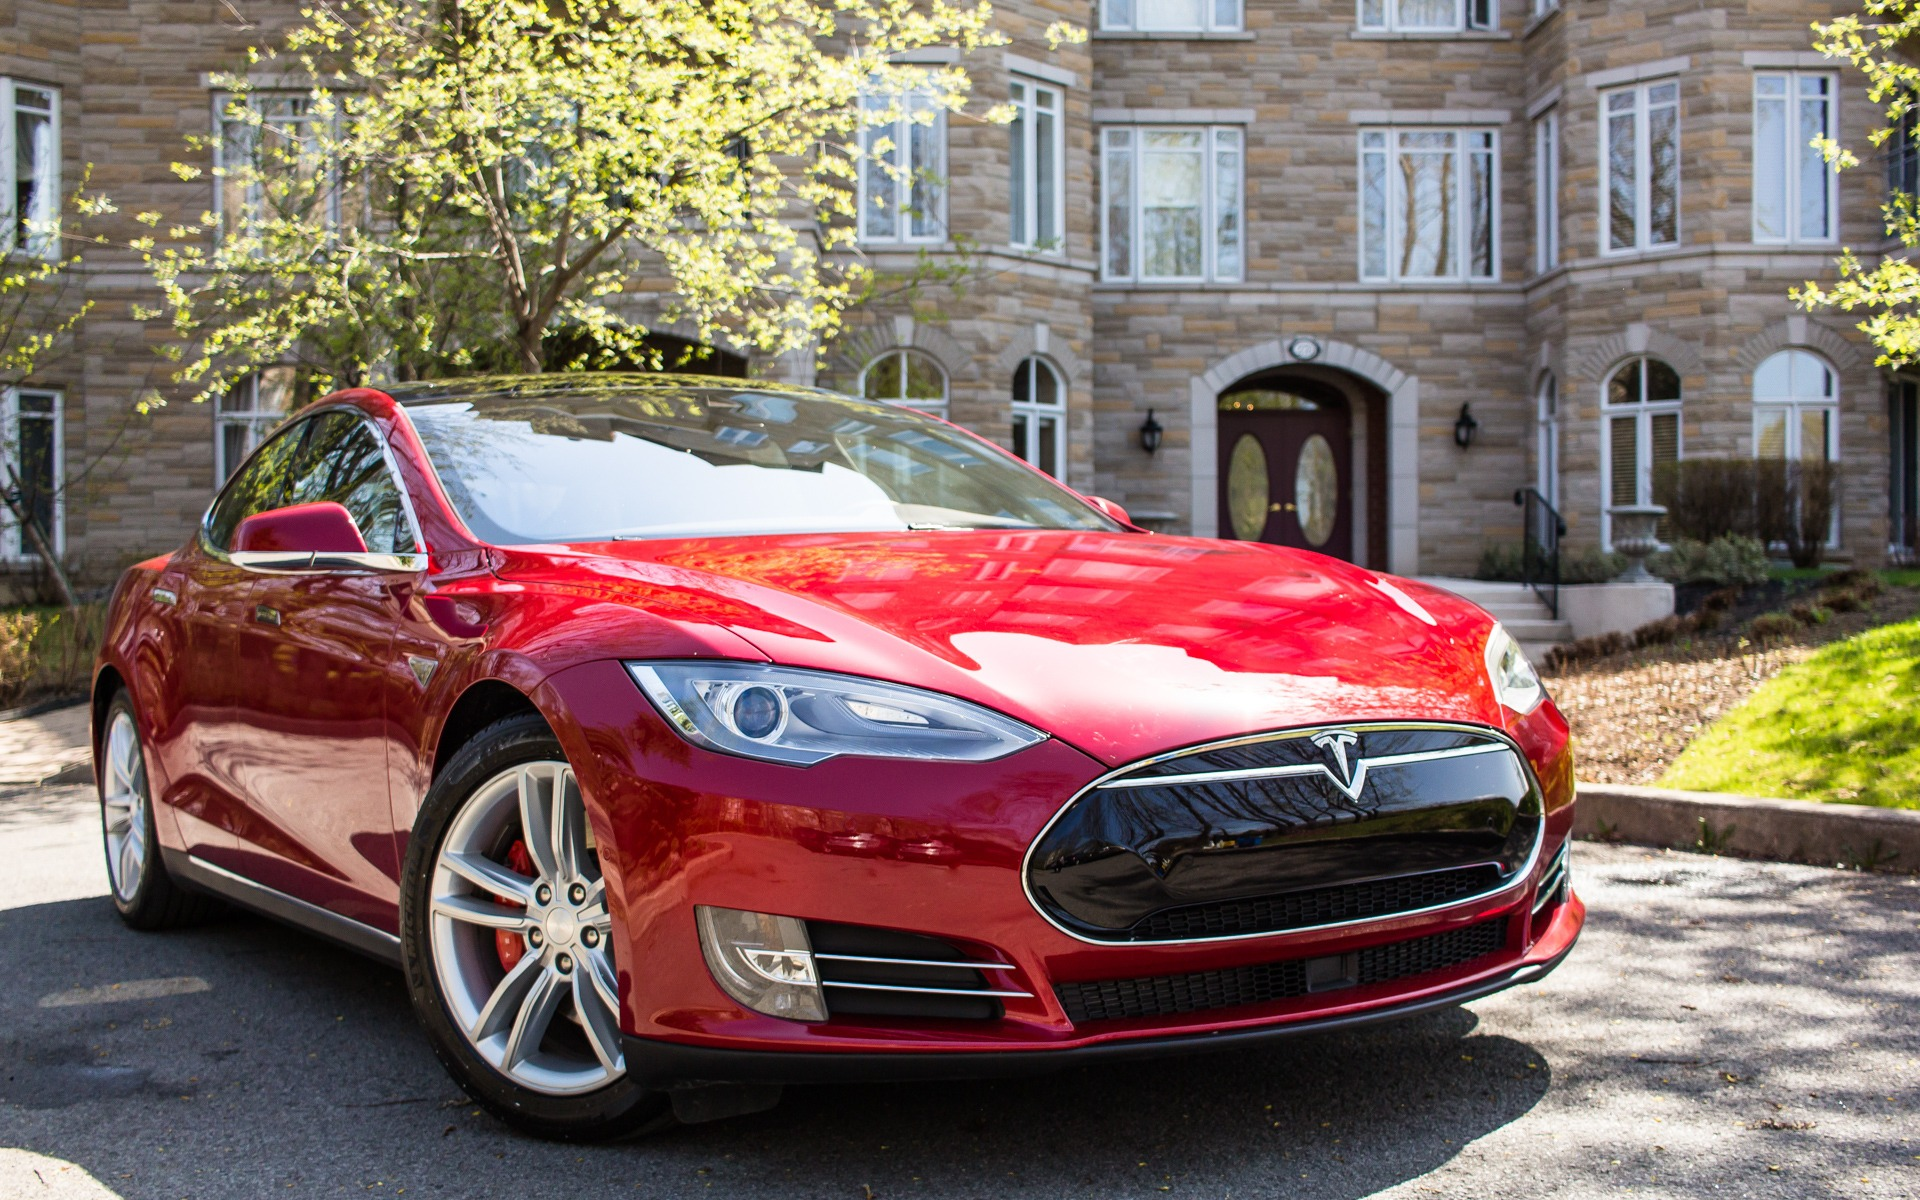 2016 Tesla Model S - News, reviews, picture galleries and